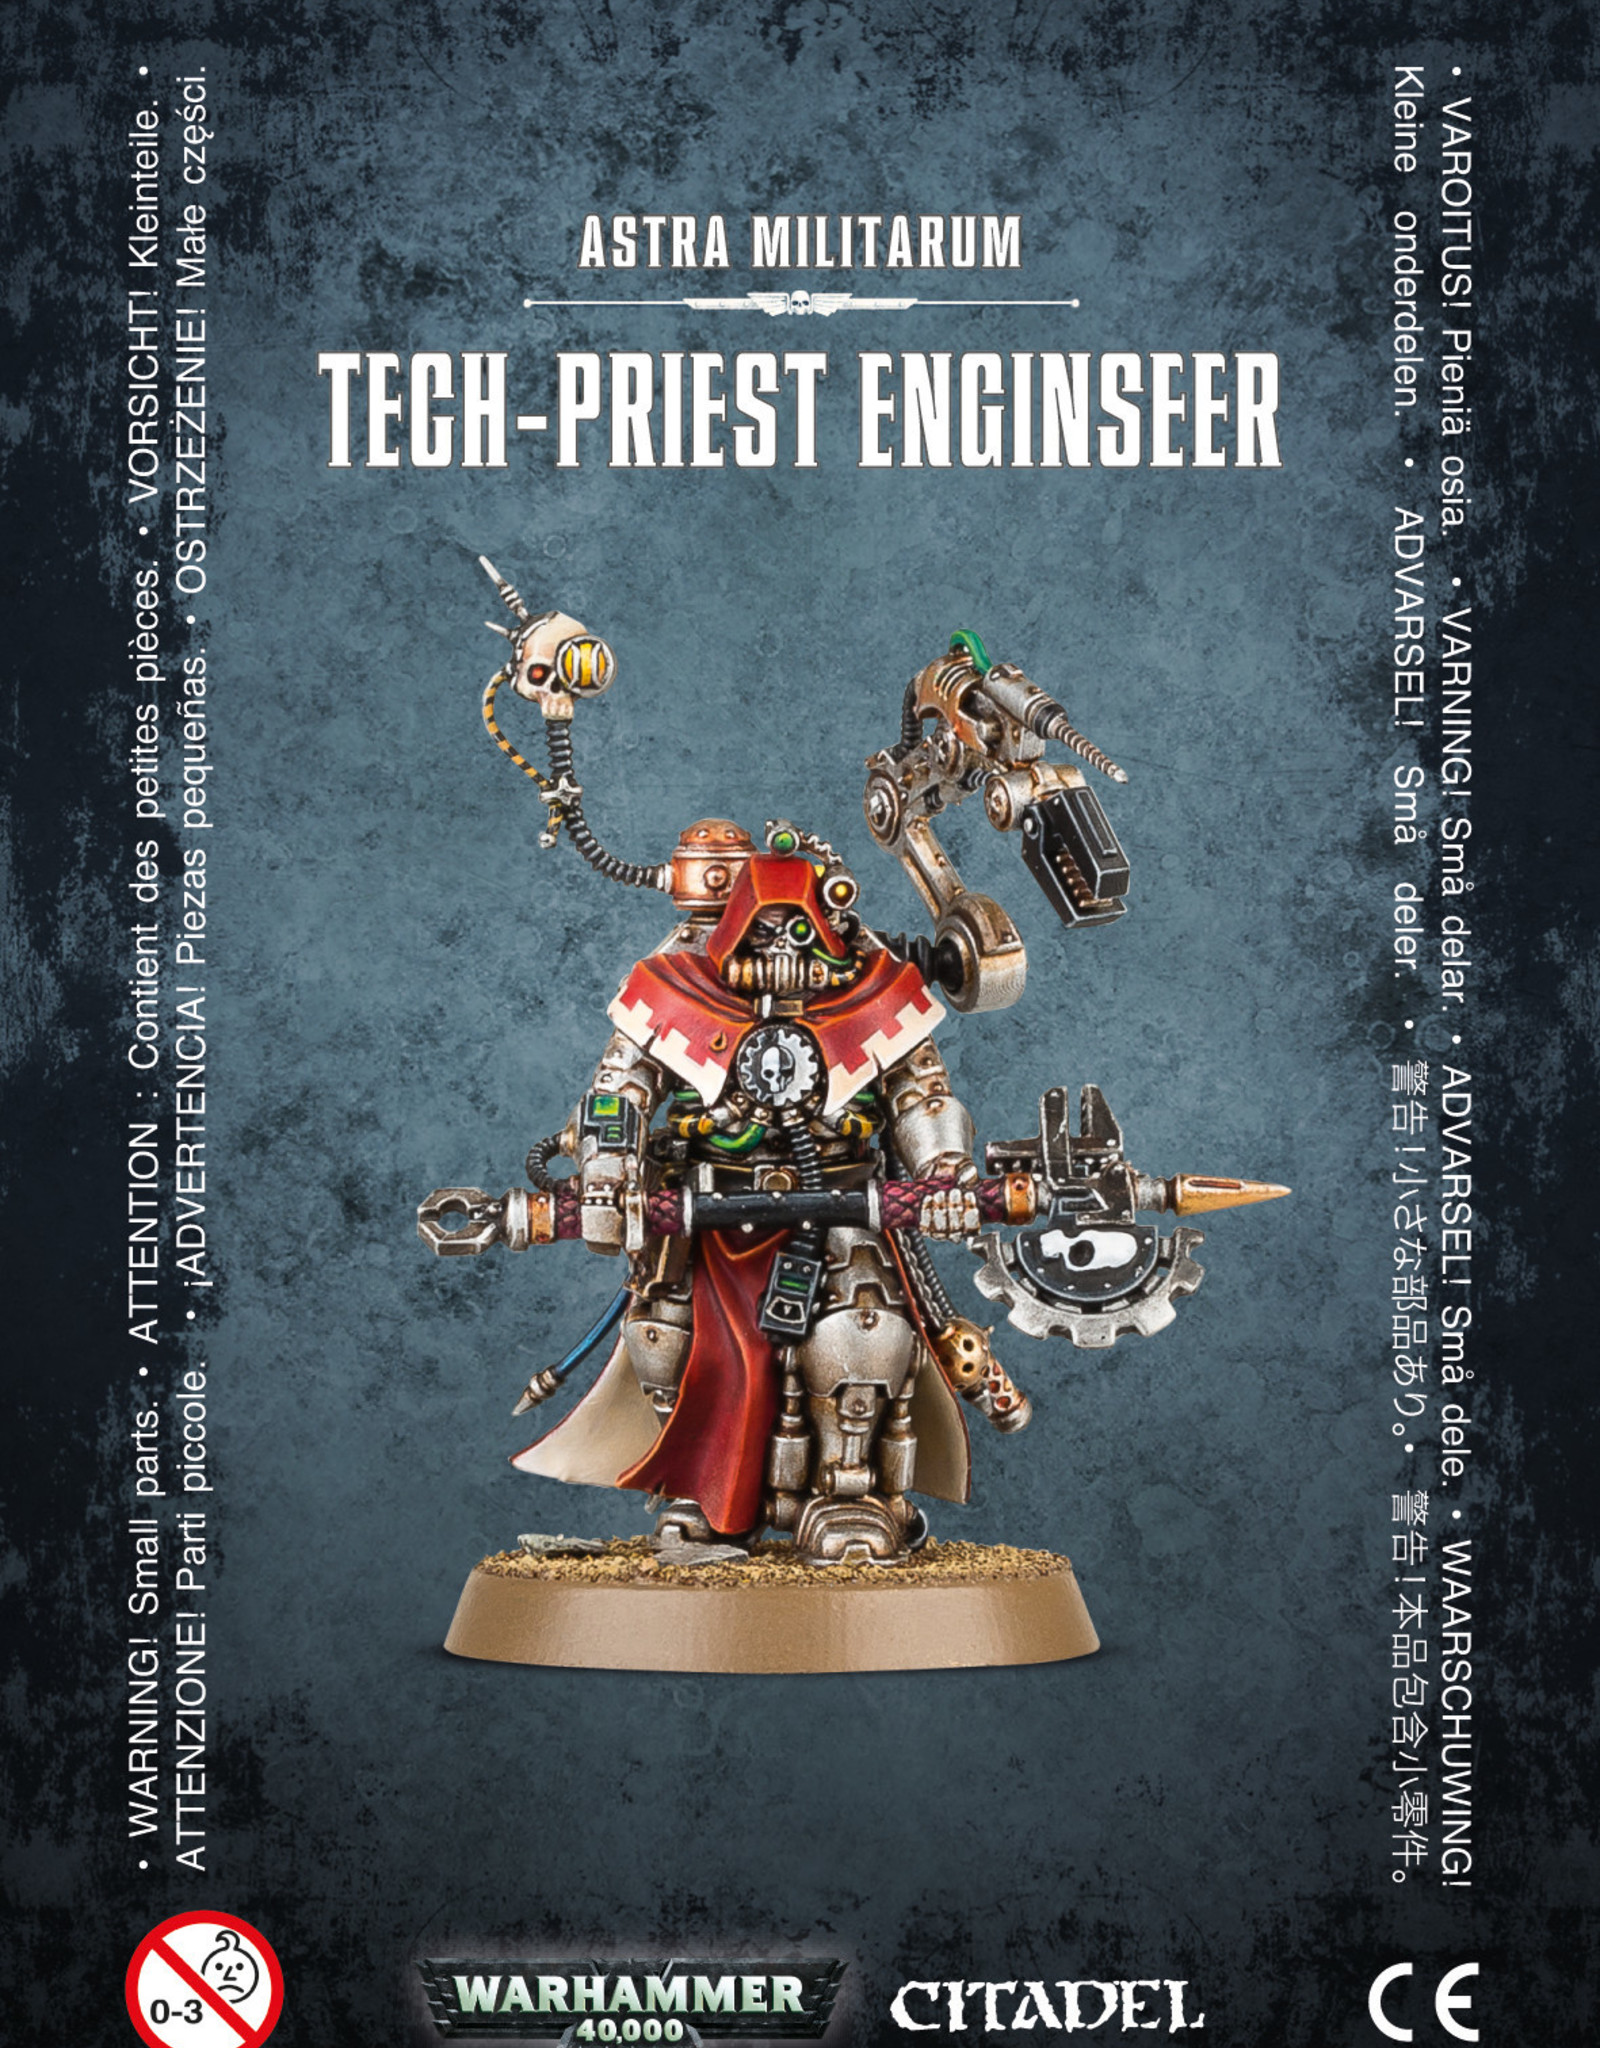 Warhammer 40K Astra Militarum Tech-Priest Enginseer